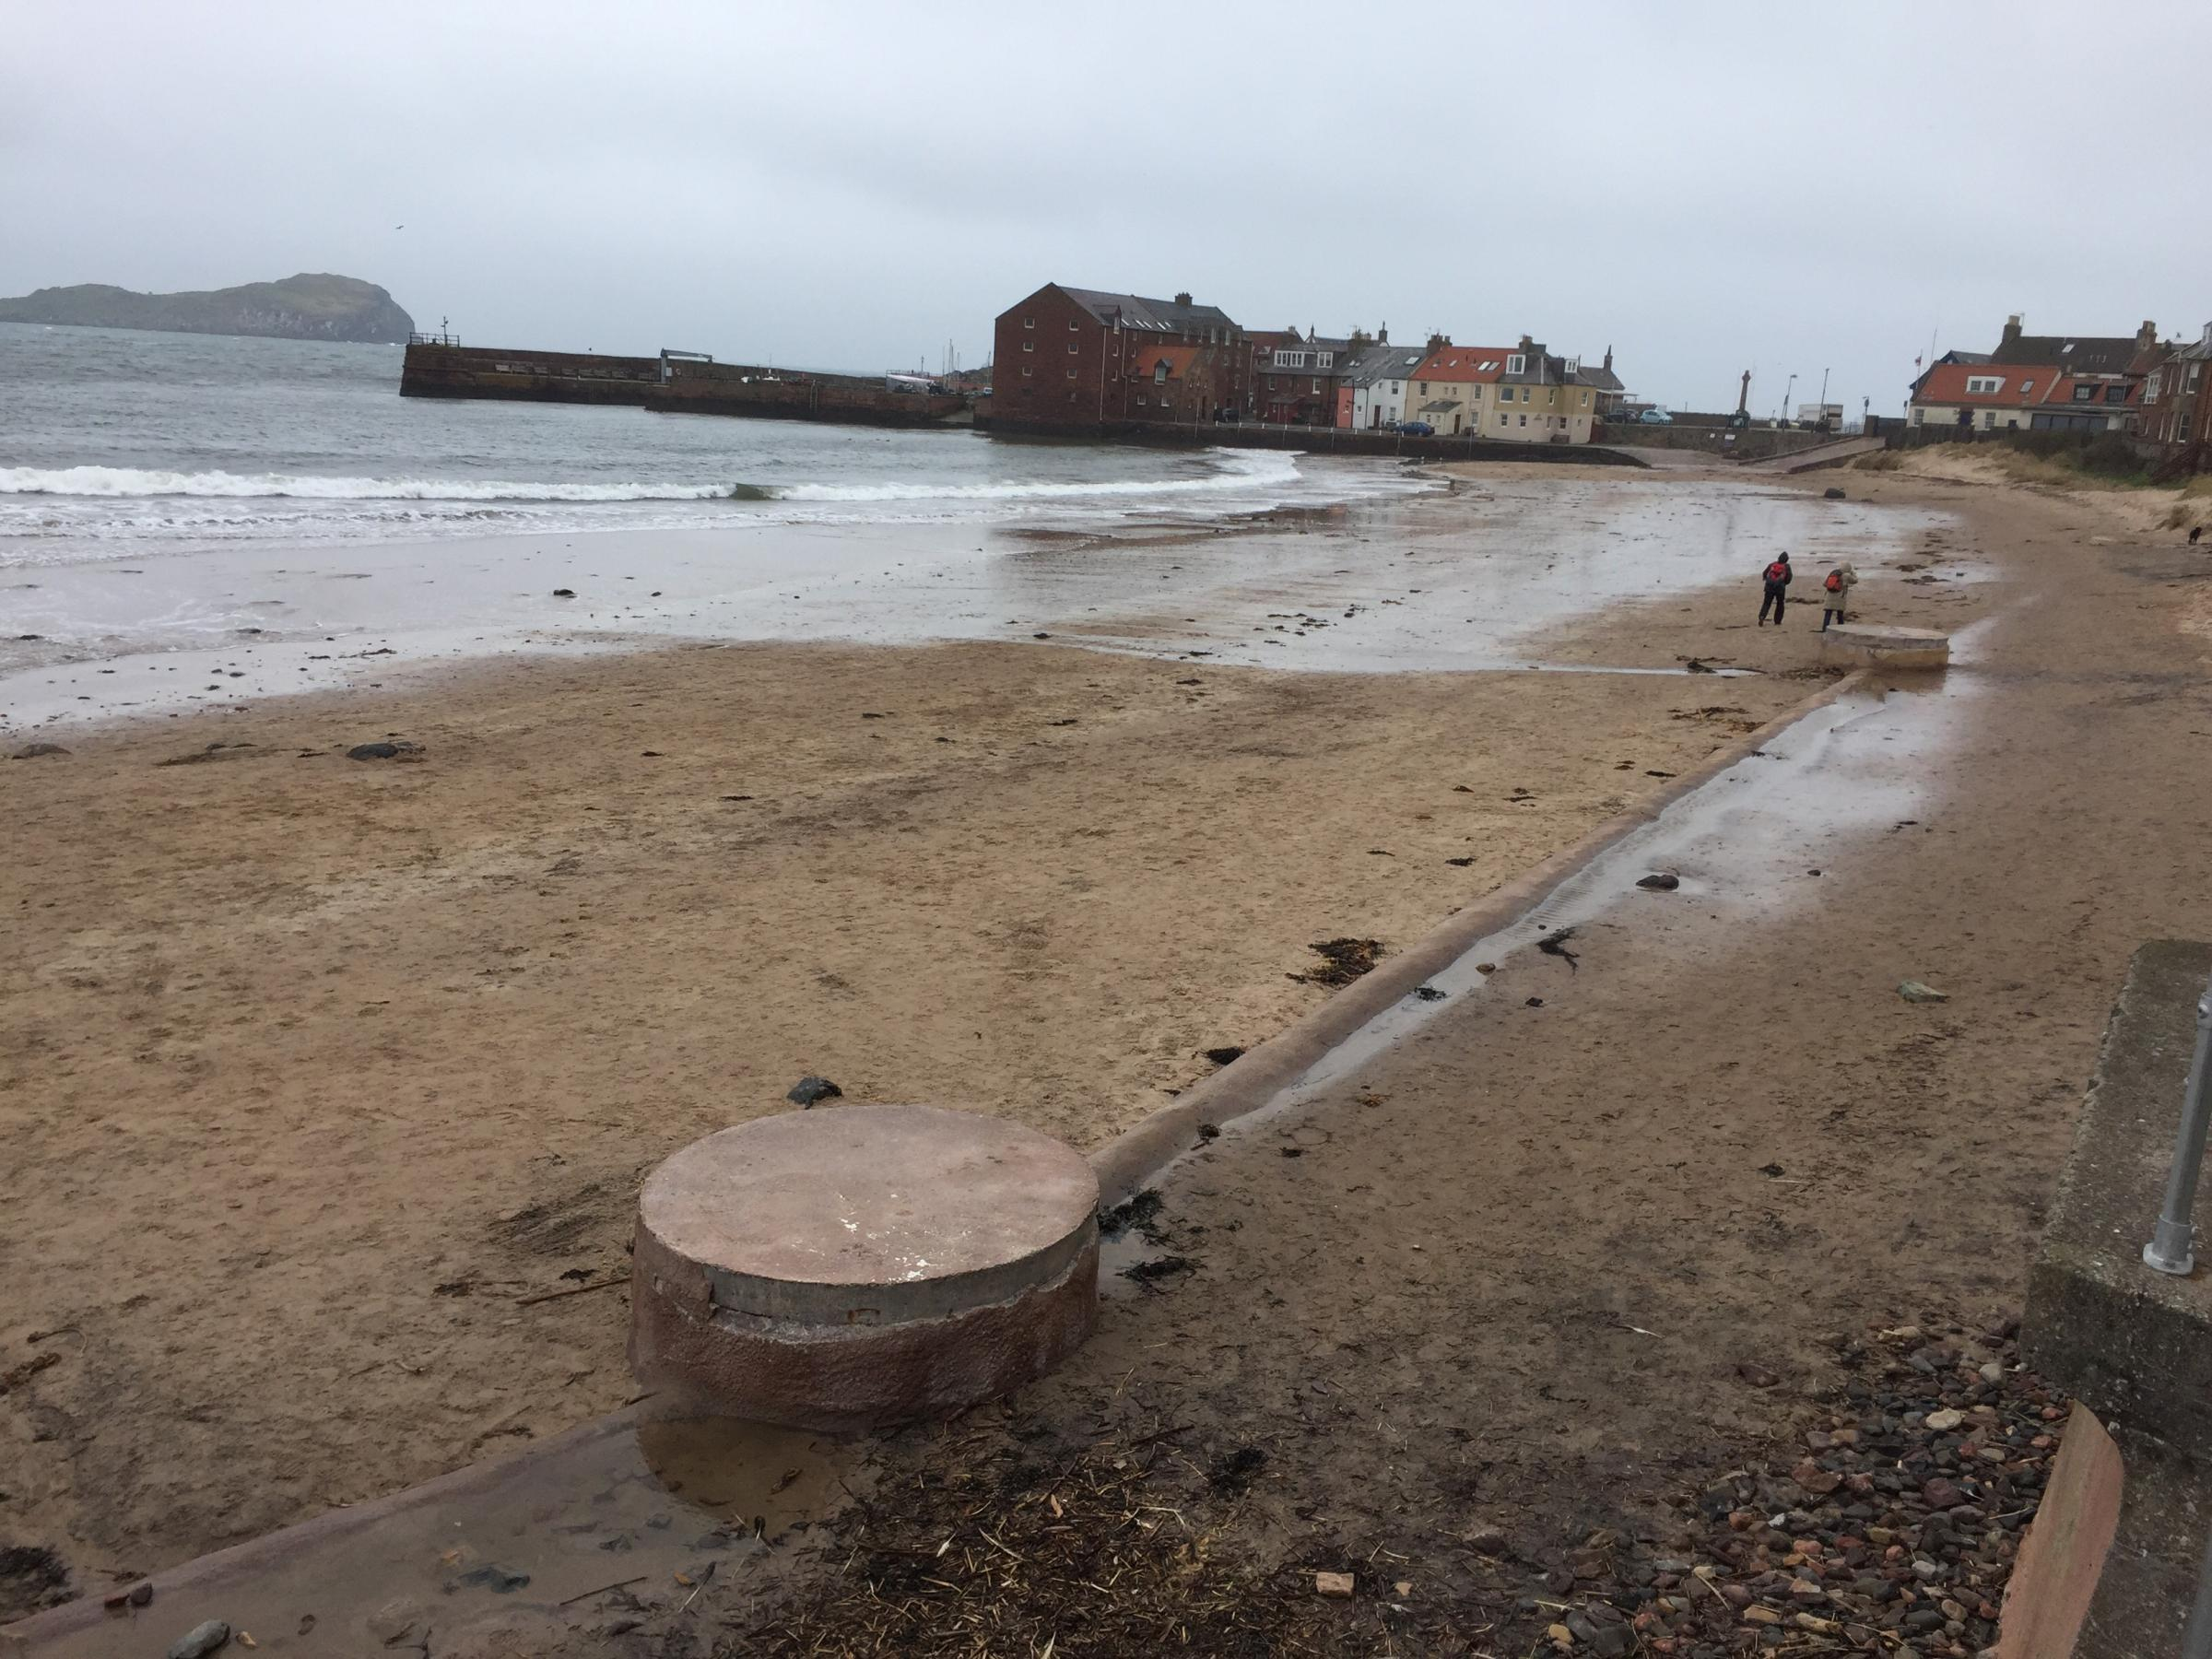 The sewage pipe is now exposed at West Beach